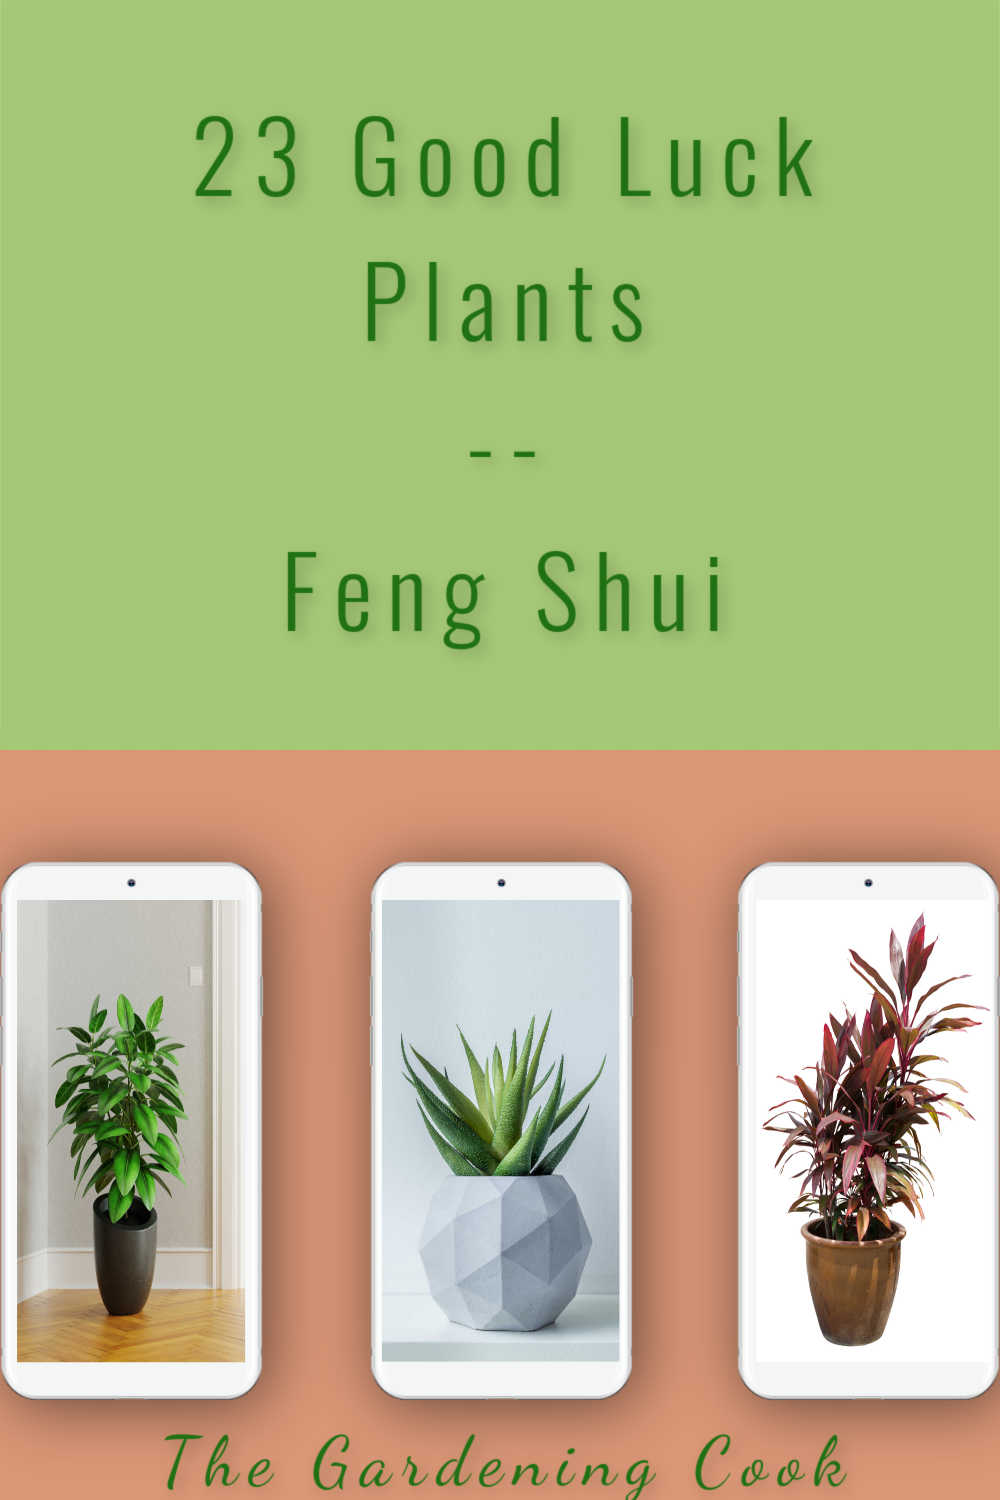 Three phones with pictures of lucky plants with words reading 23 gook luck plants feng shui.